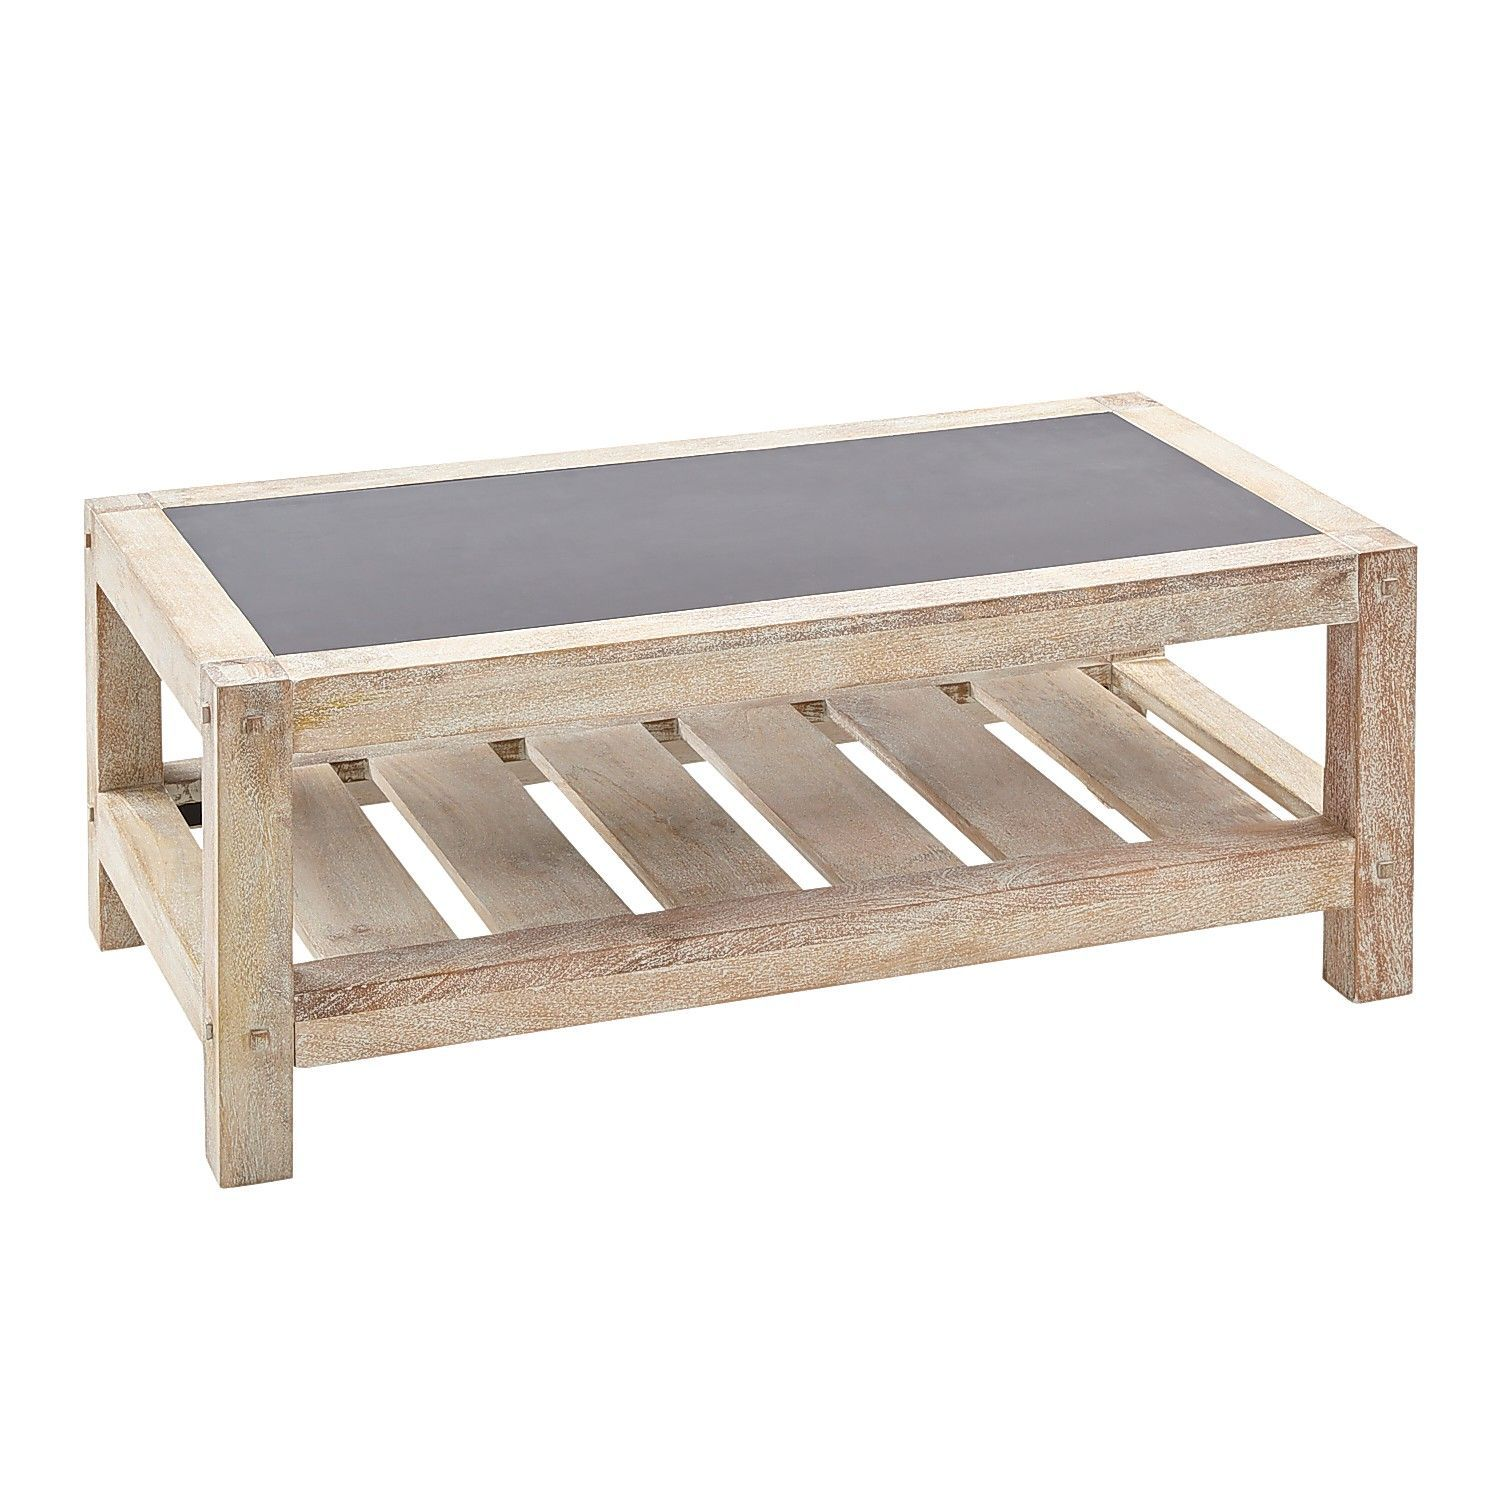 Vermont Gray Whitewashed Rectangle Coffee Table Pier 1 Imports